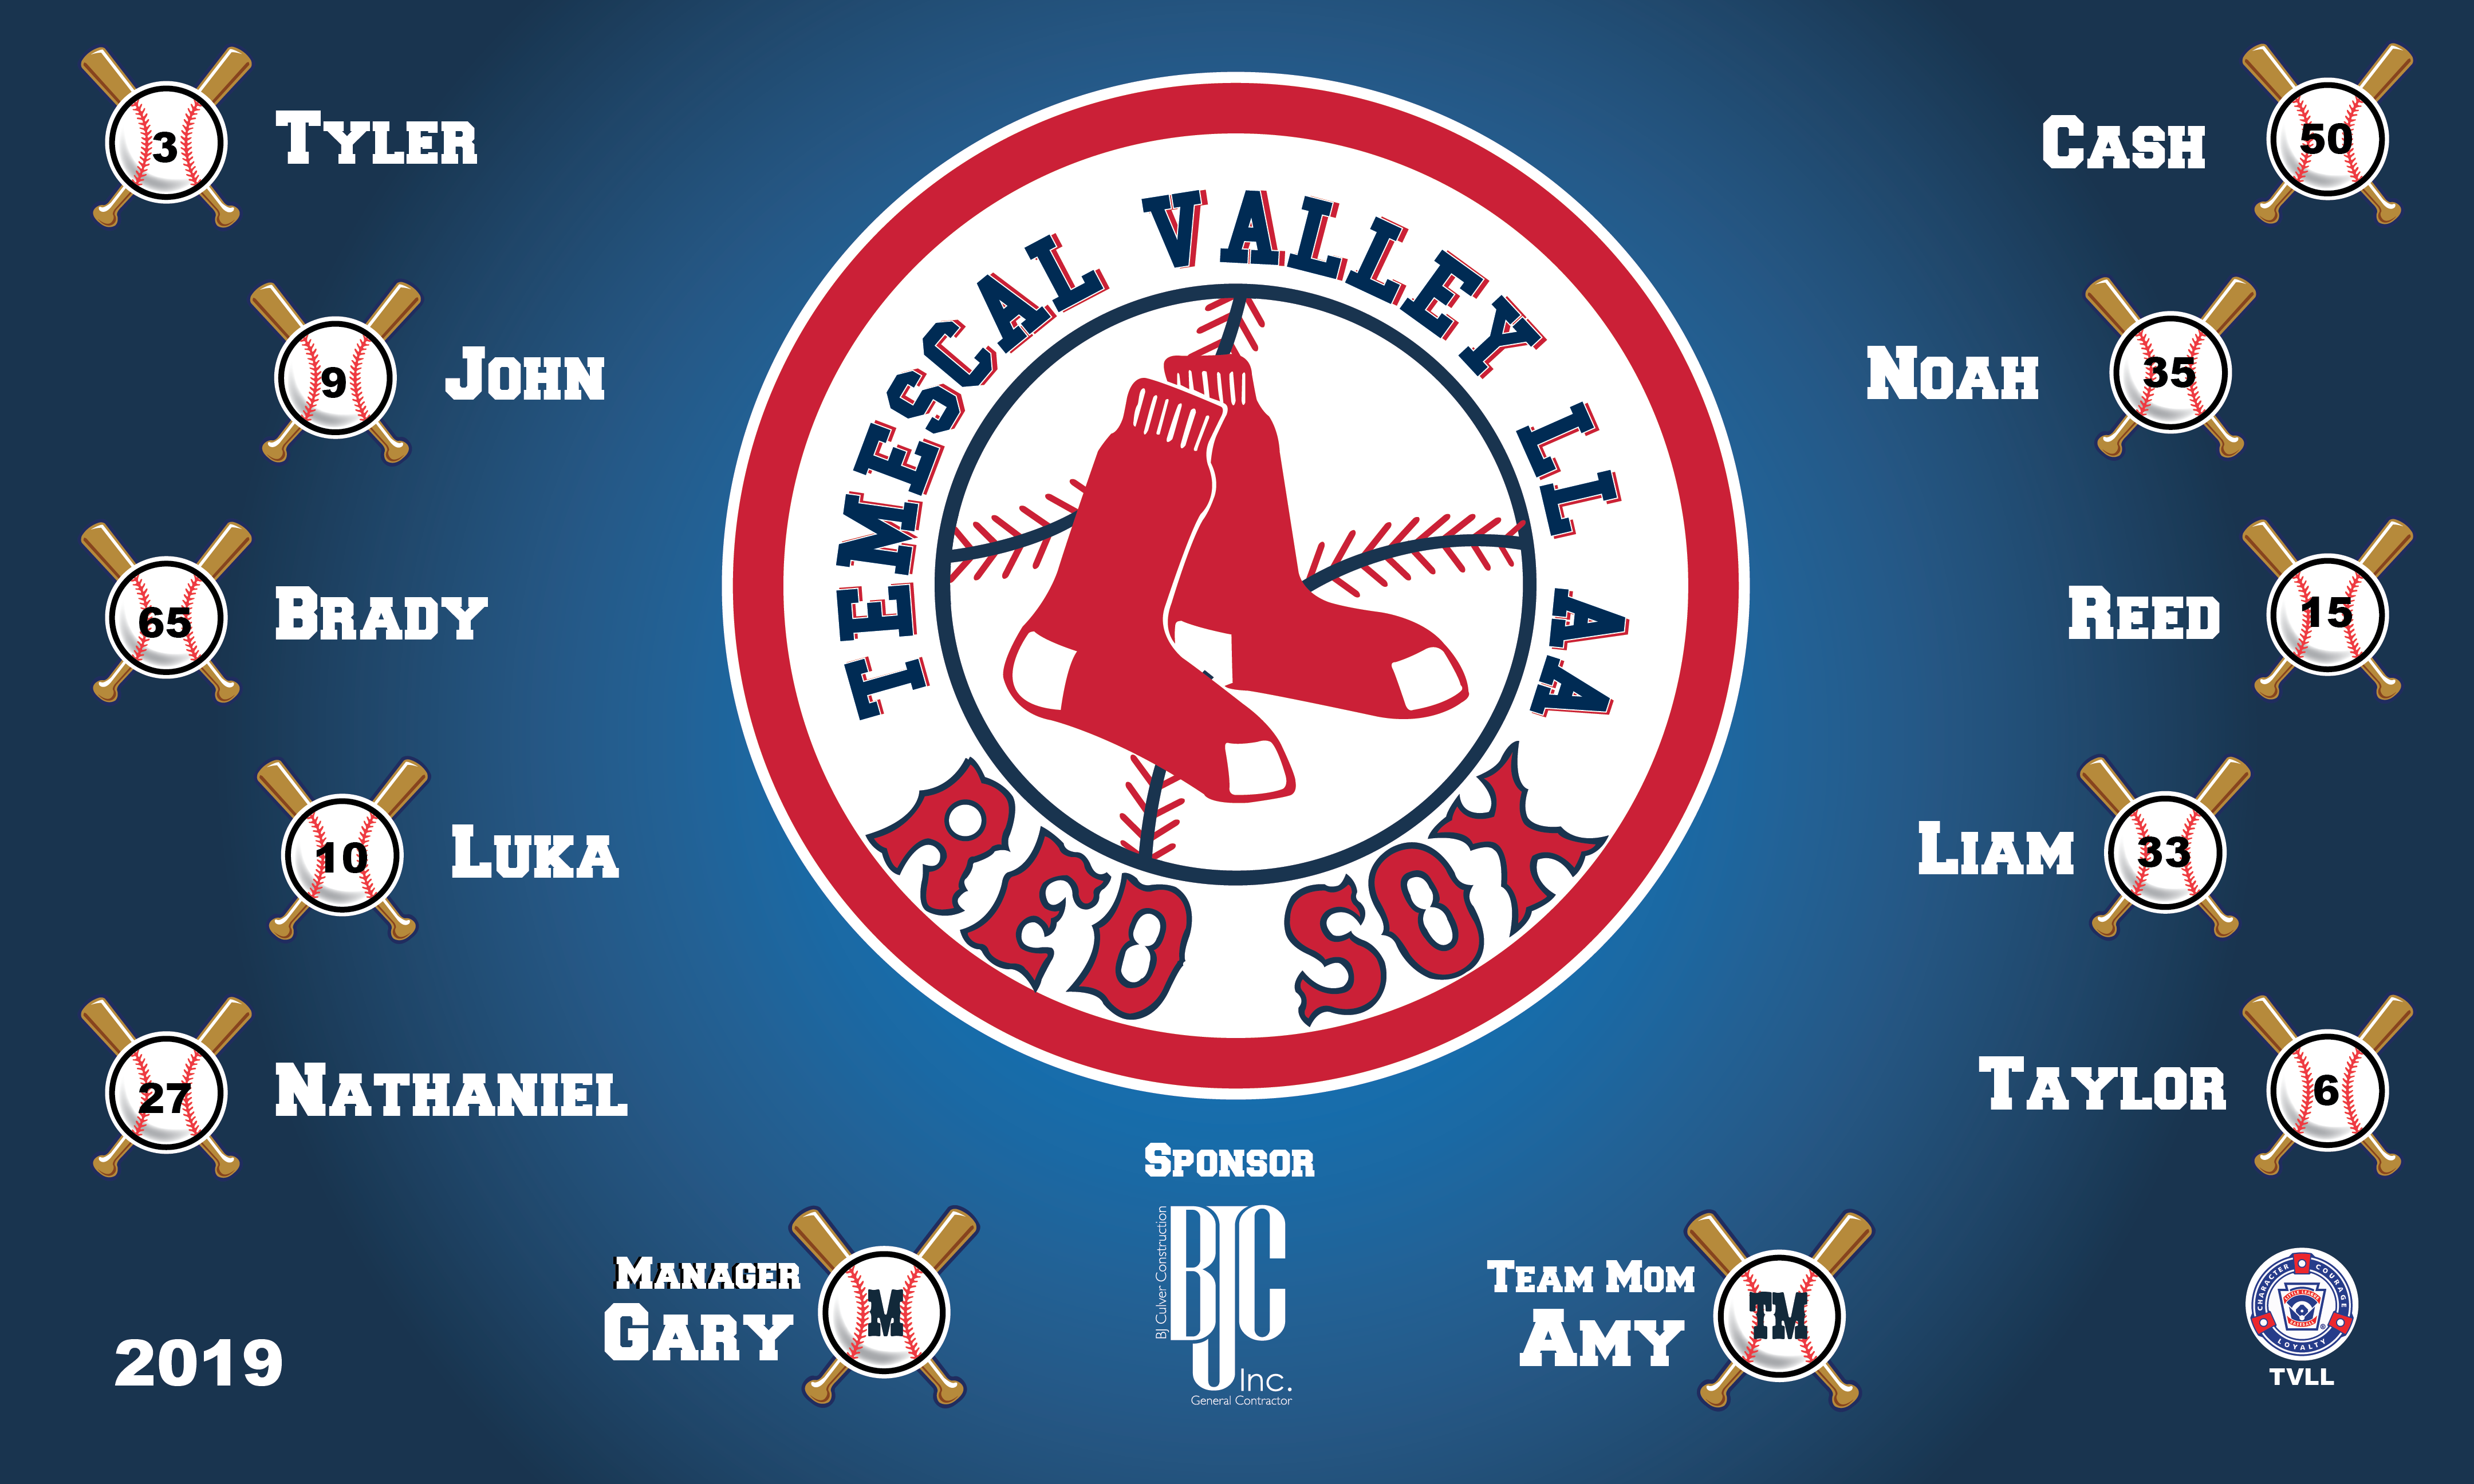 B2473 Red Sox 3x5 Banner